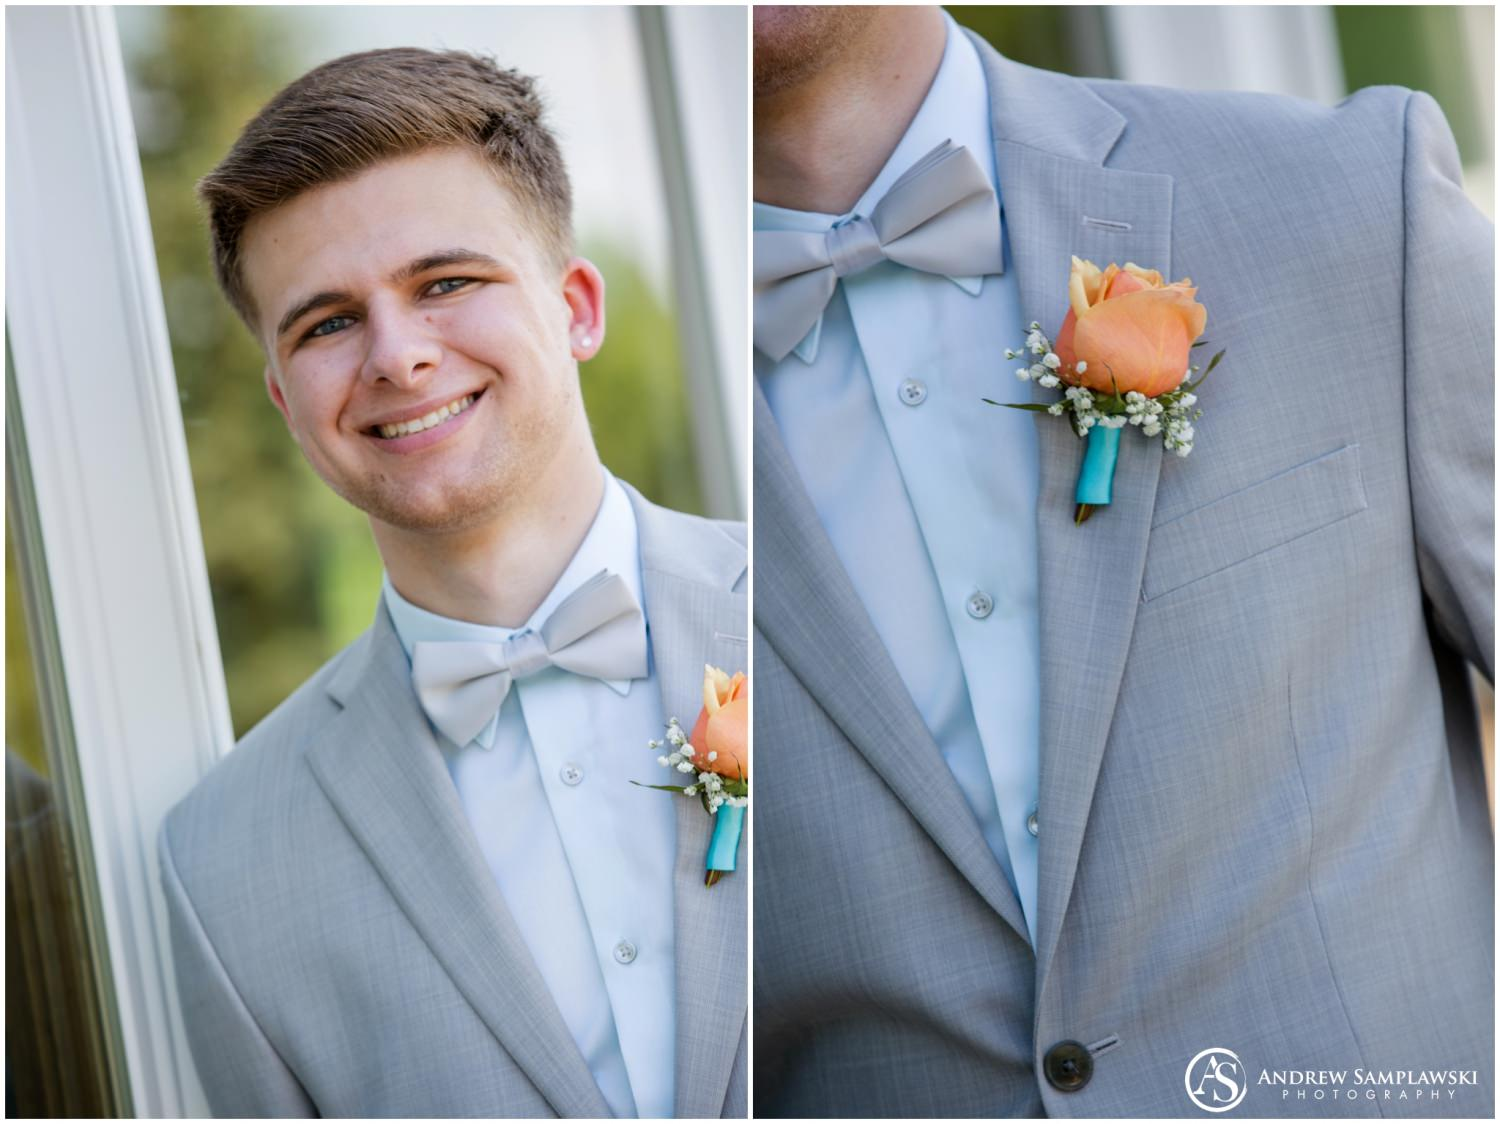 Tyler & Bryce Wedding | Andrew Samplawski Photography | Weddings ...